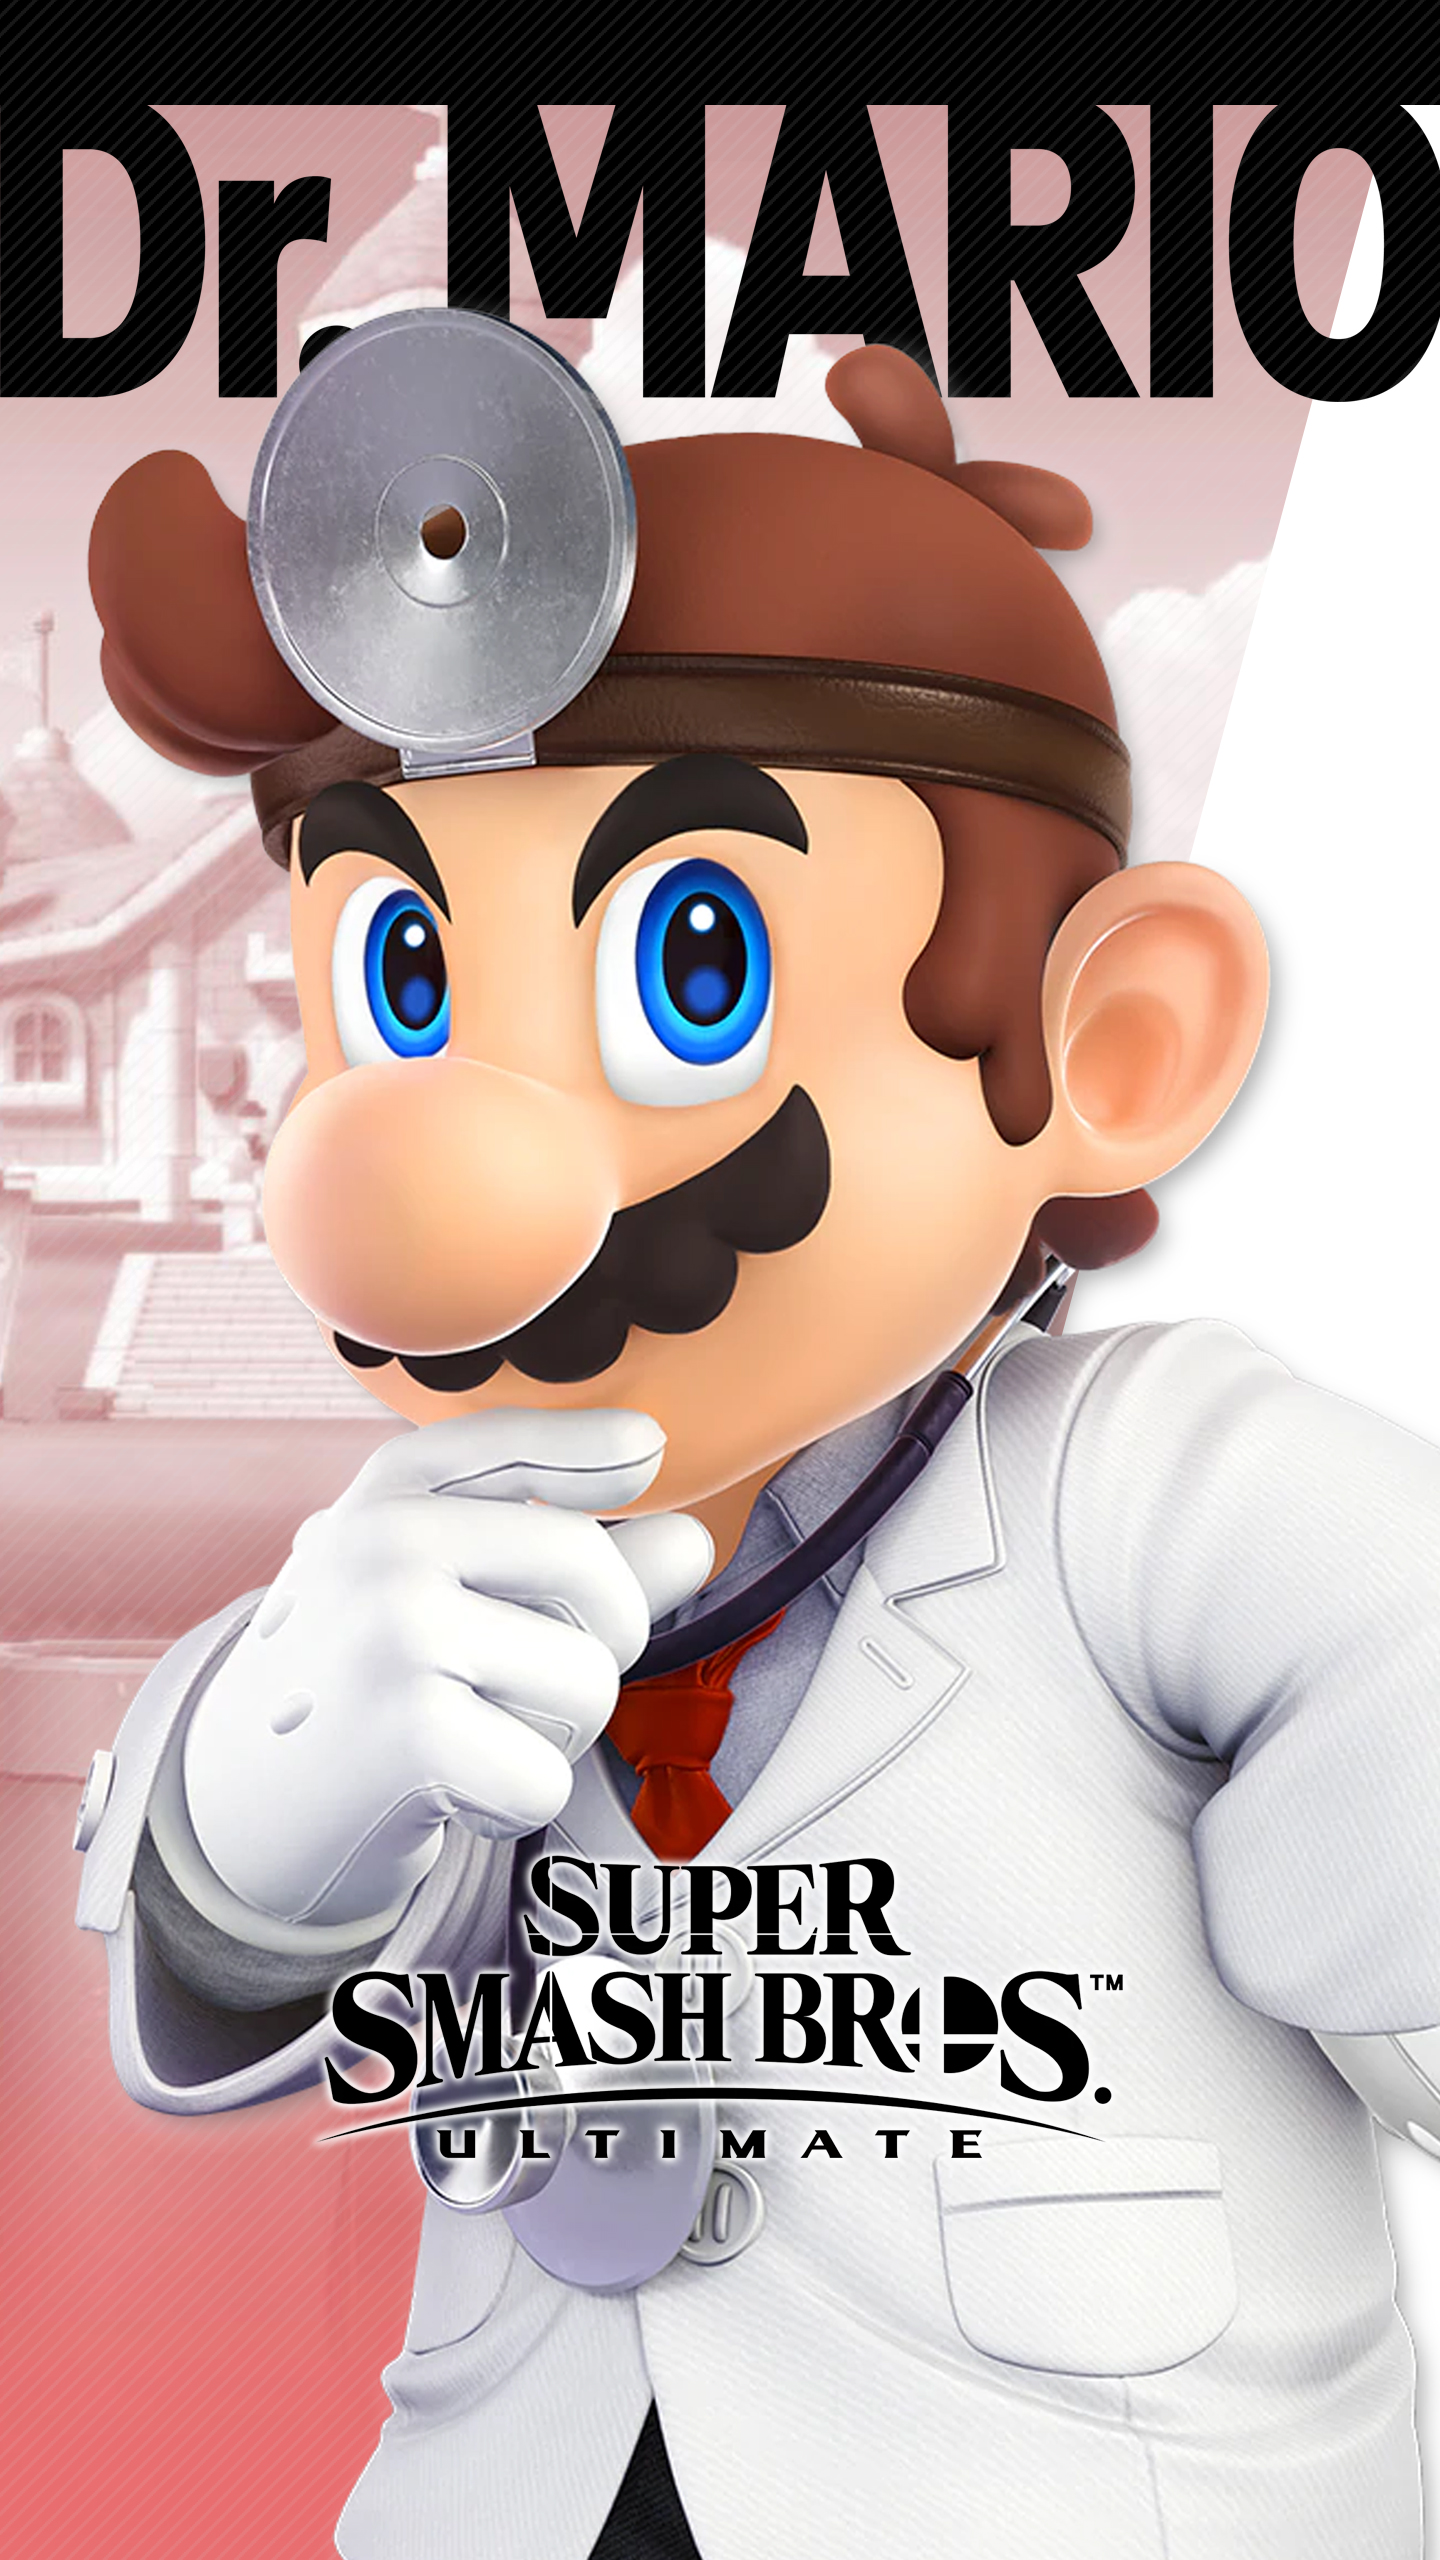 Iphone 6s Plus Wallpaper Size Super Smash Bros Ultimate Dr Mario Wallpapers Cat With